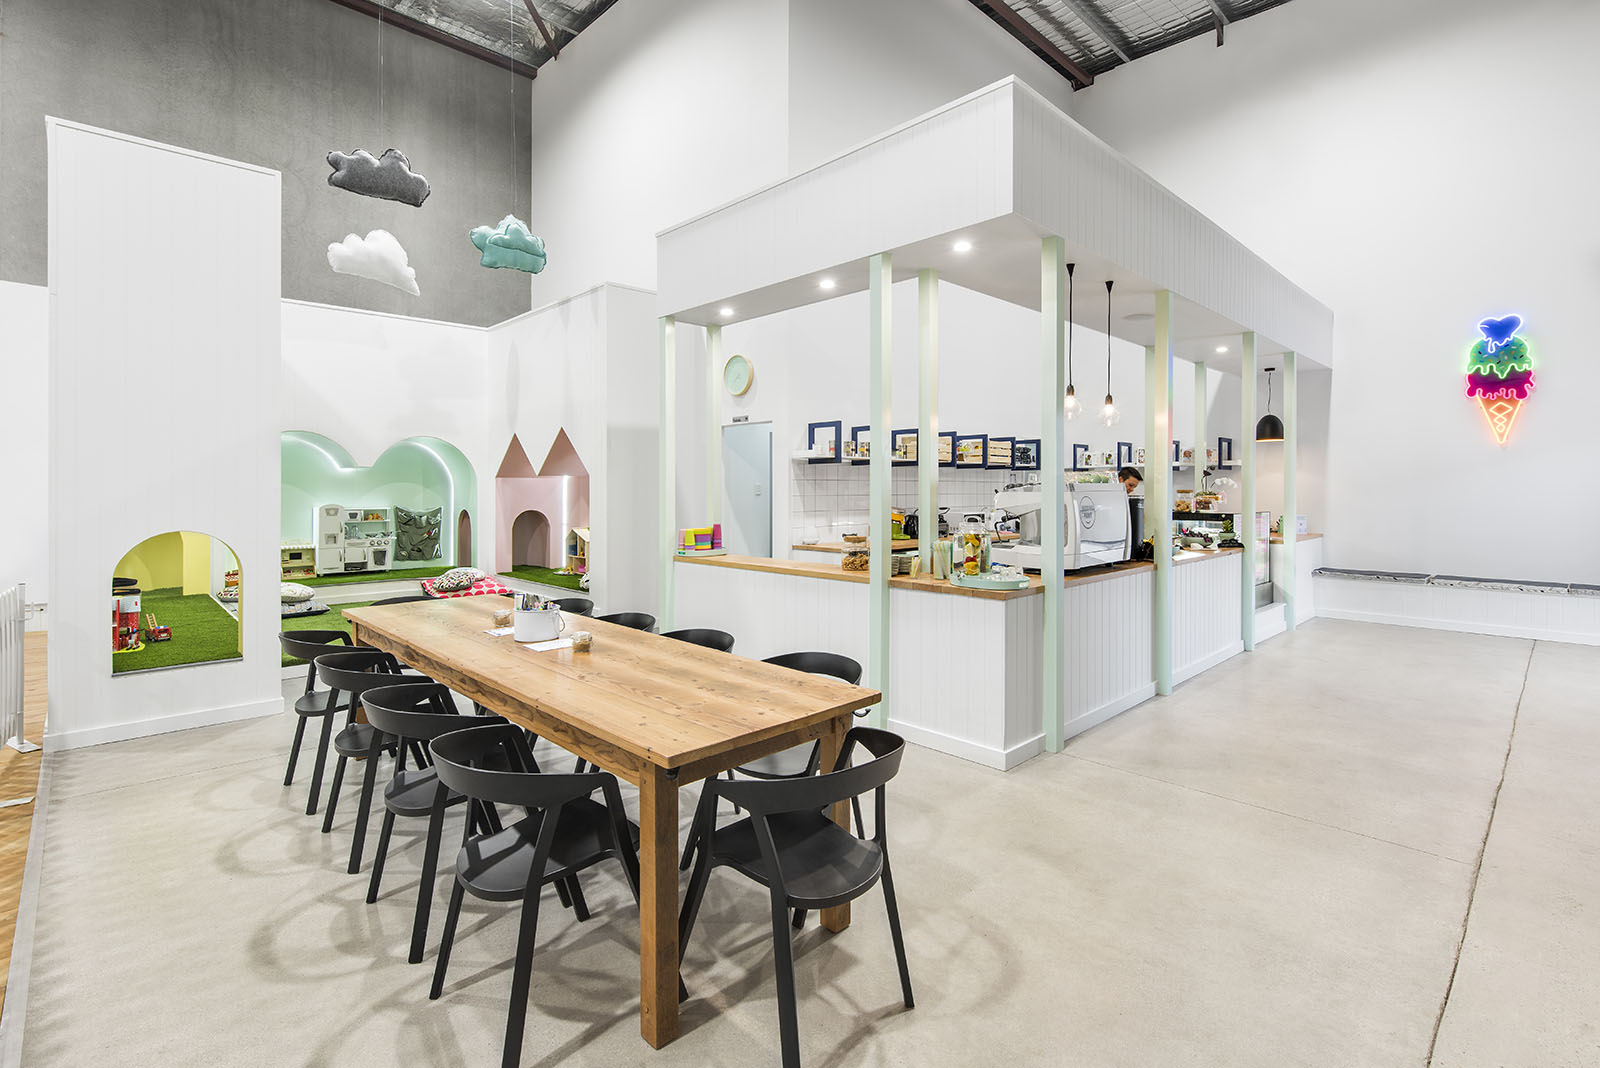 Coffee Hub - Kid & Hub is Adelaide's haven for families - drop into our coffee and play hub anytime.Parents can enjoy a coffee and gourmet food in the coffee hub while their children explore the play hub.